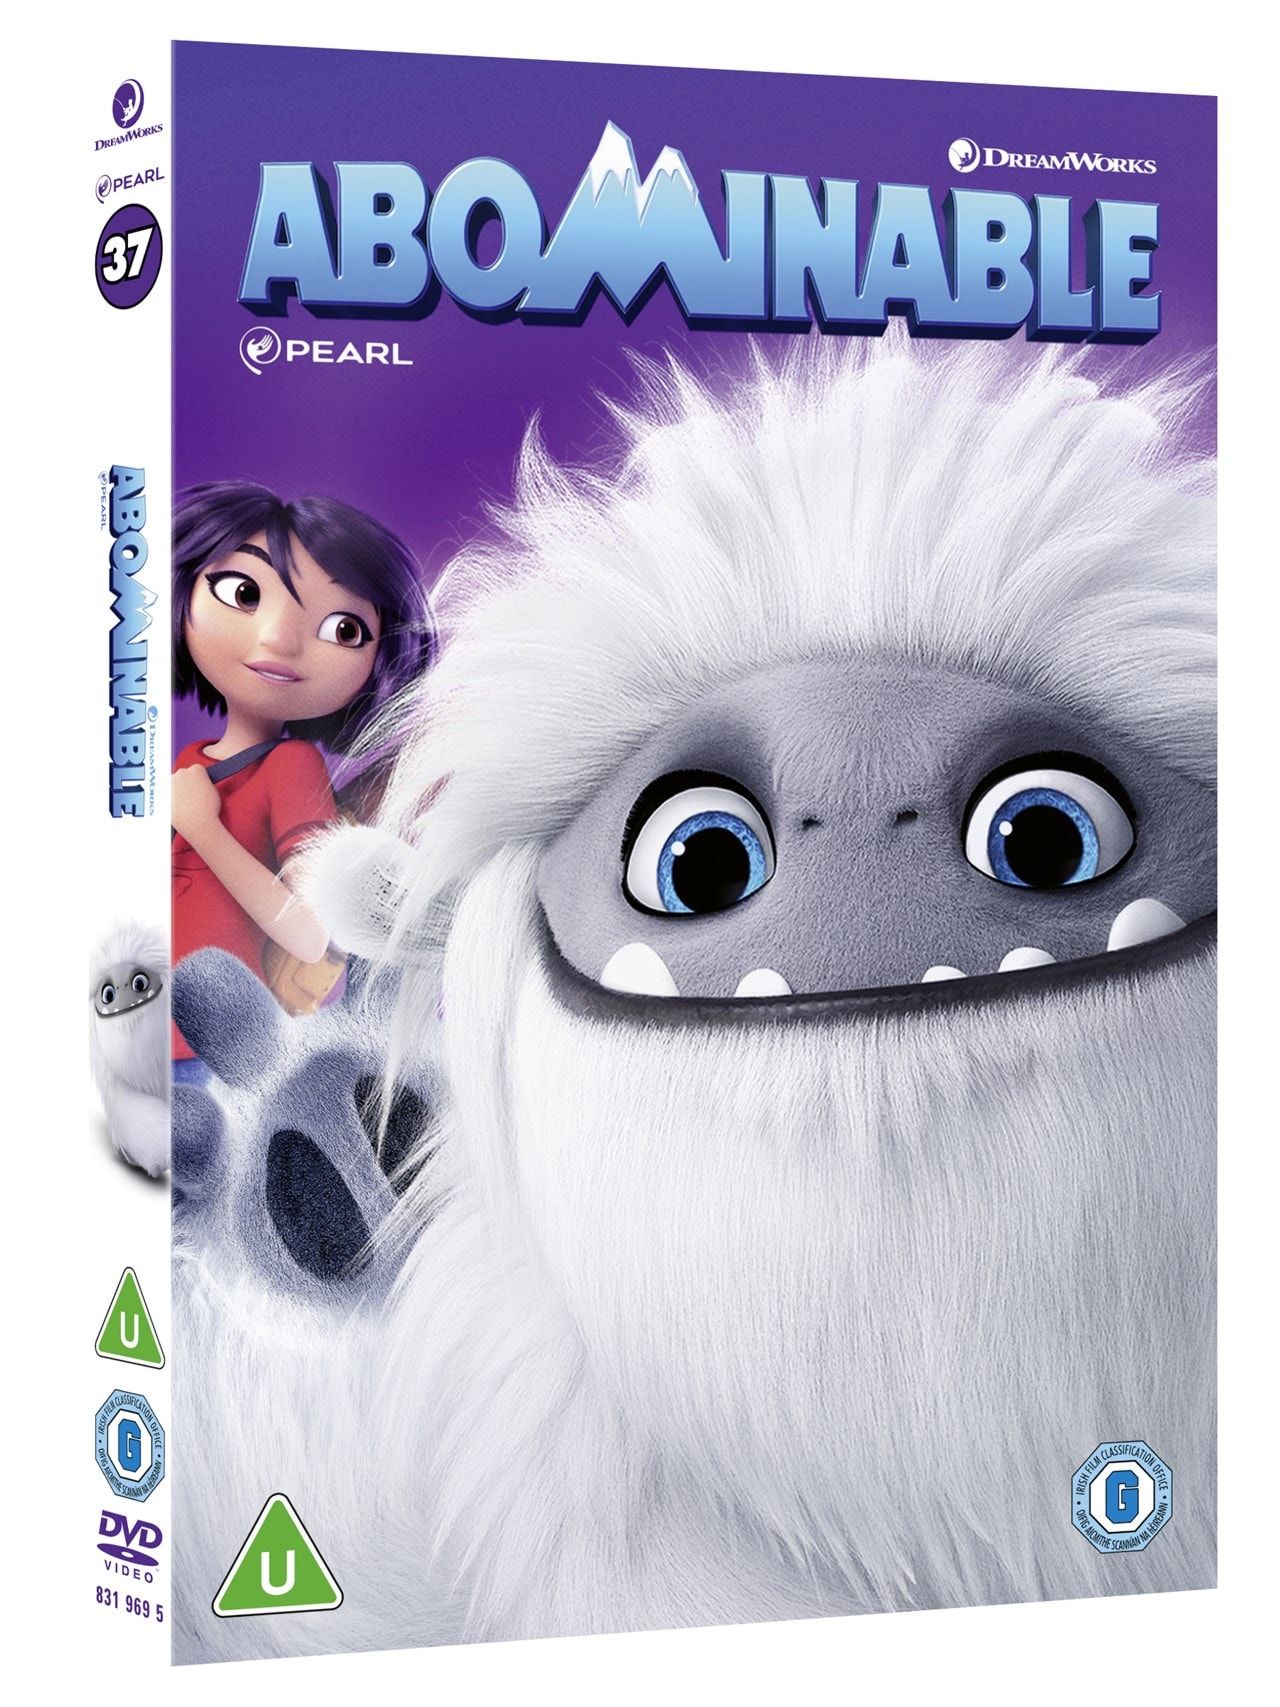 Abominable Dvd Free Shipping Over 163 20 Hmv Store